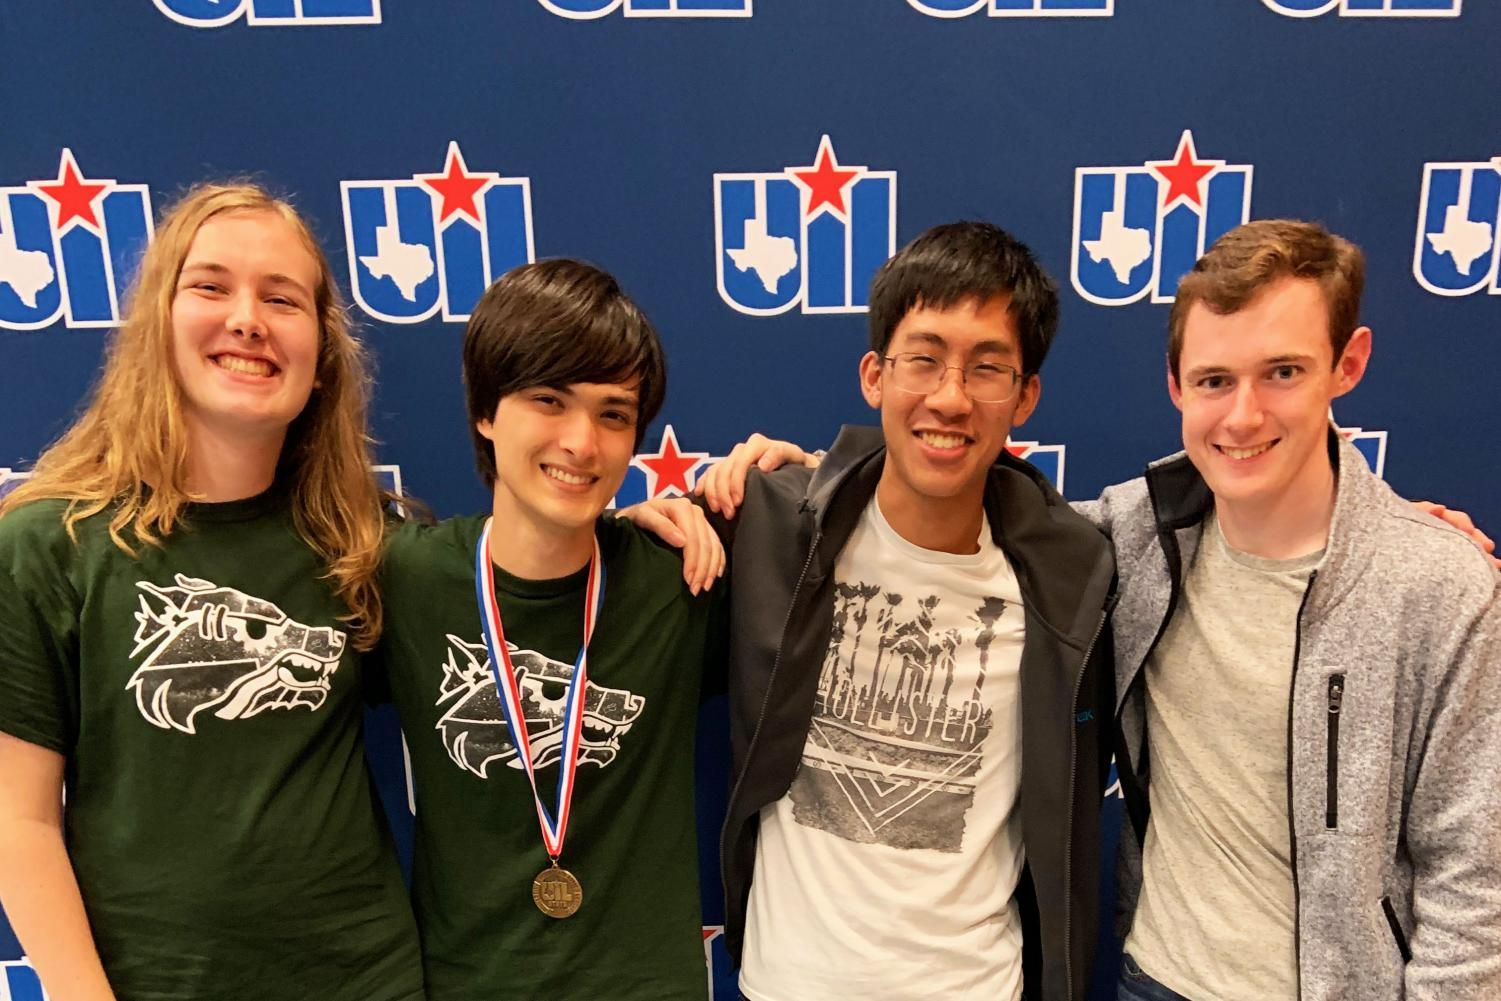 Seniors Sage Langenfeld, Josh Kolenbrander, Thien Le and junior Gabe Underwood attend the UIL state meet where Kolenbrander got fifth in Computer Science.